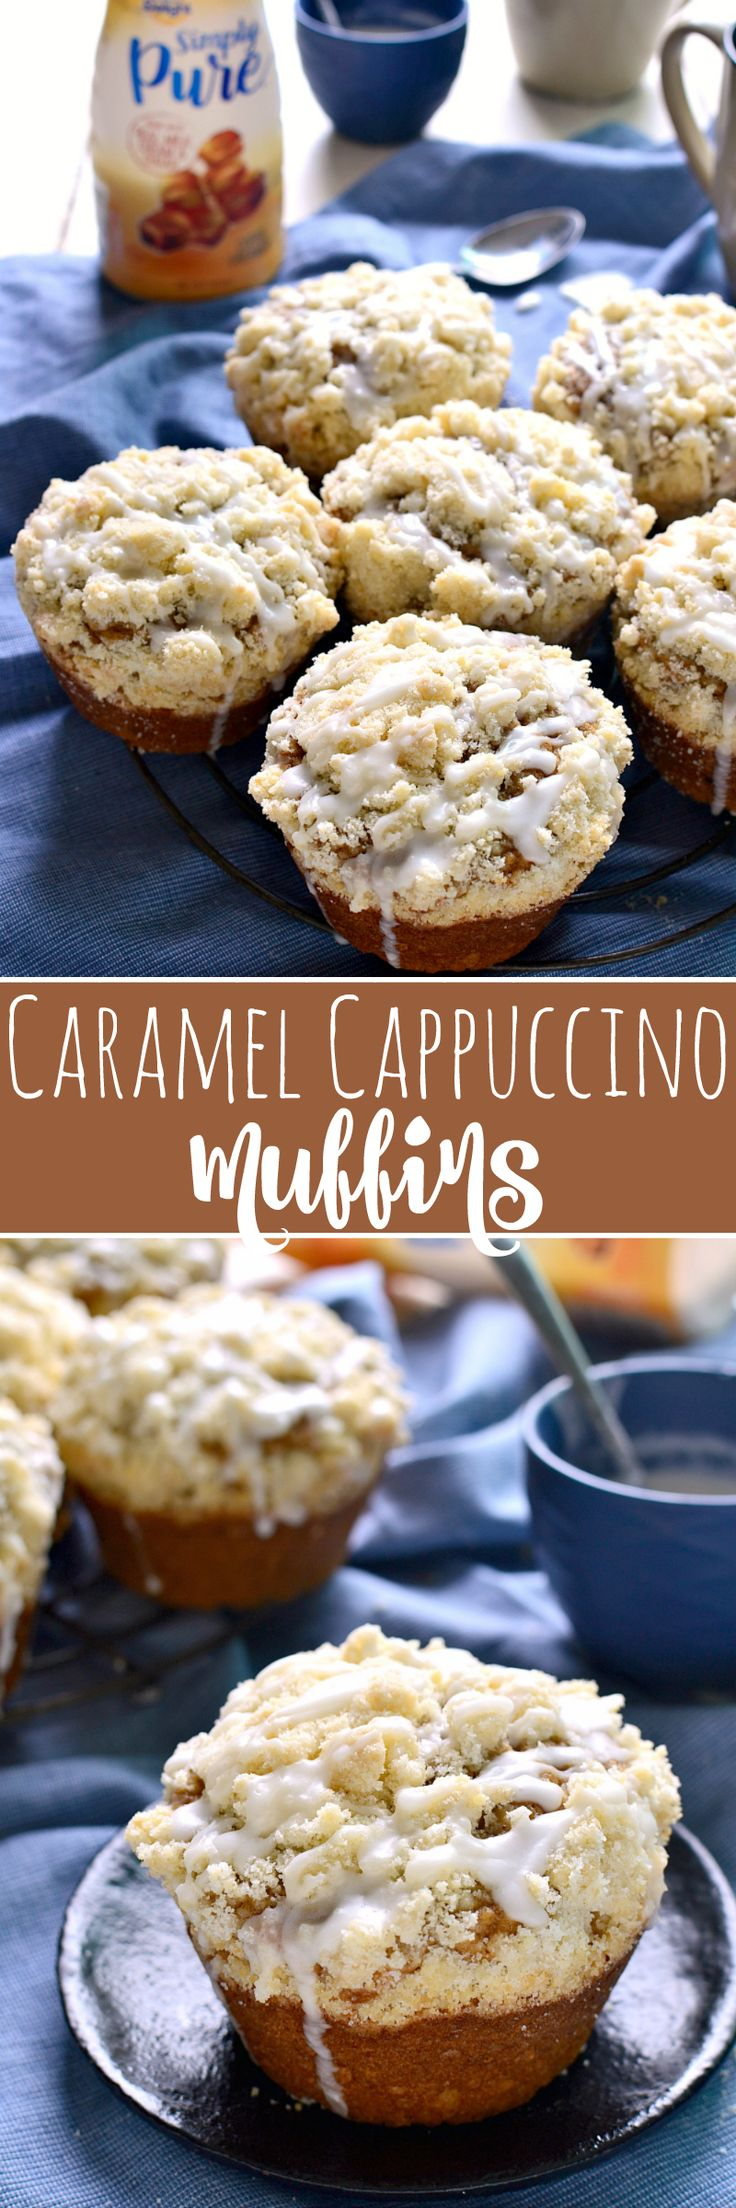 These Caramel Cappuccino Muffins are packed with the delicious flavors of caramel and espresso and topped with a generous layer of streusel and a drizzle of sweet caramel icing. Perfect for special occasions or any day! #SimplyPureCreamer #IDelight #ad